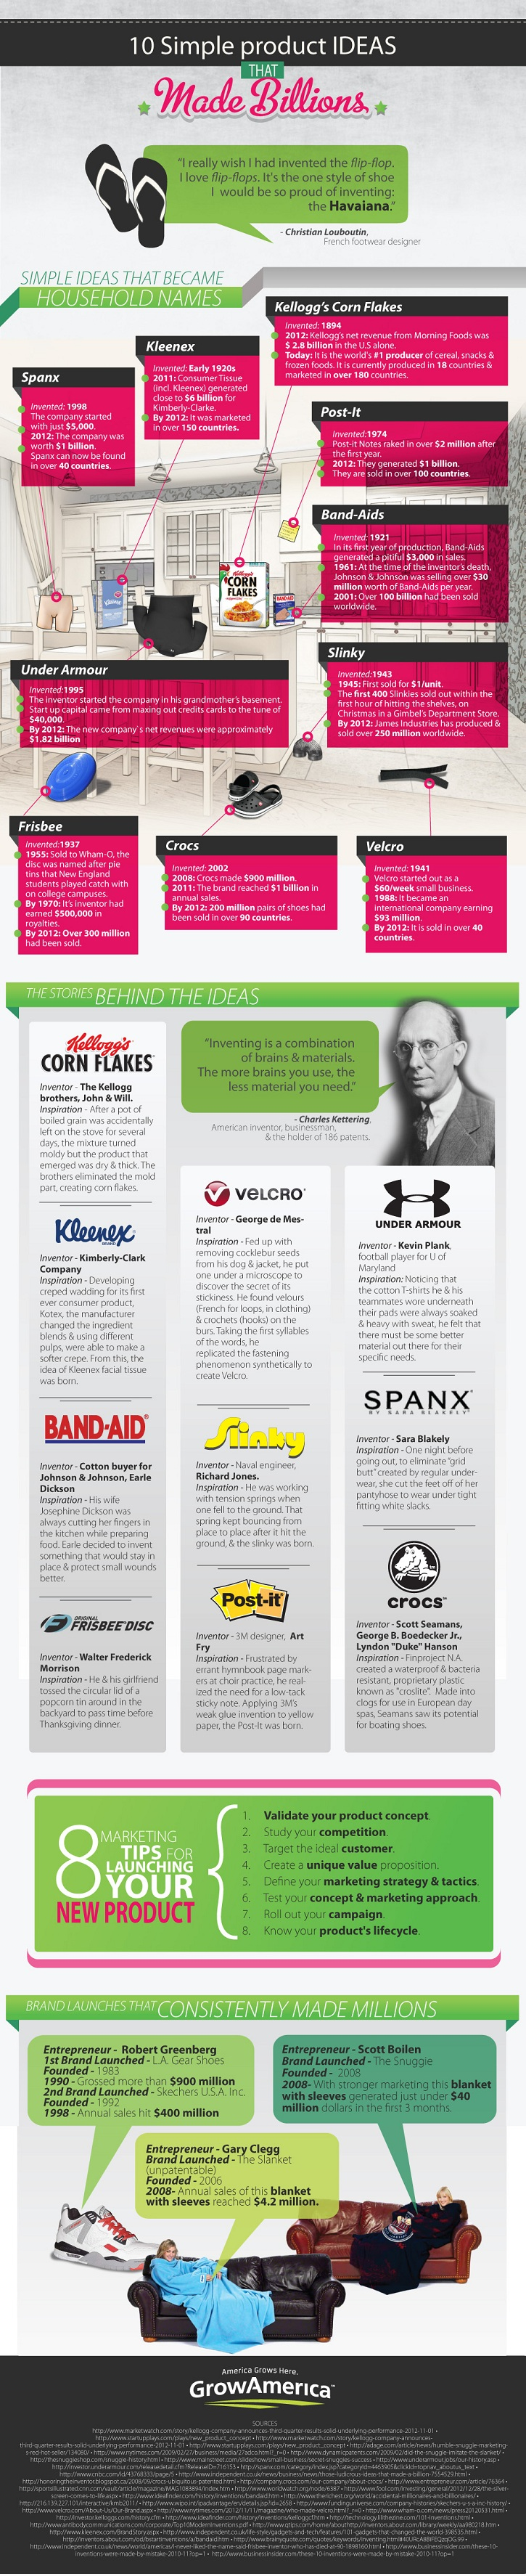 10-simple-product-ideas-that-made-billions_5107e8771c66c